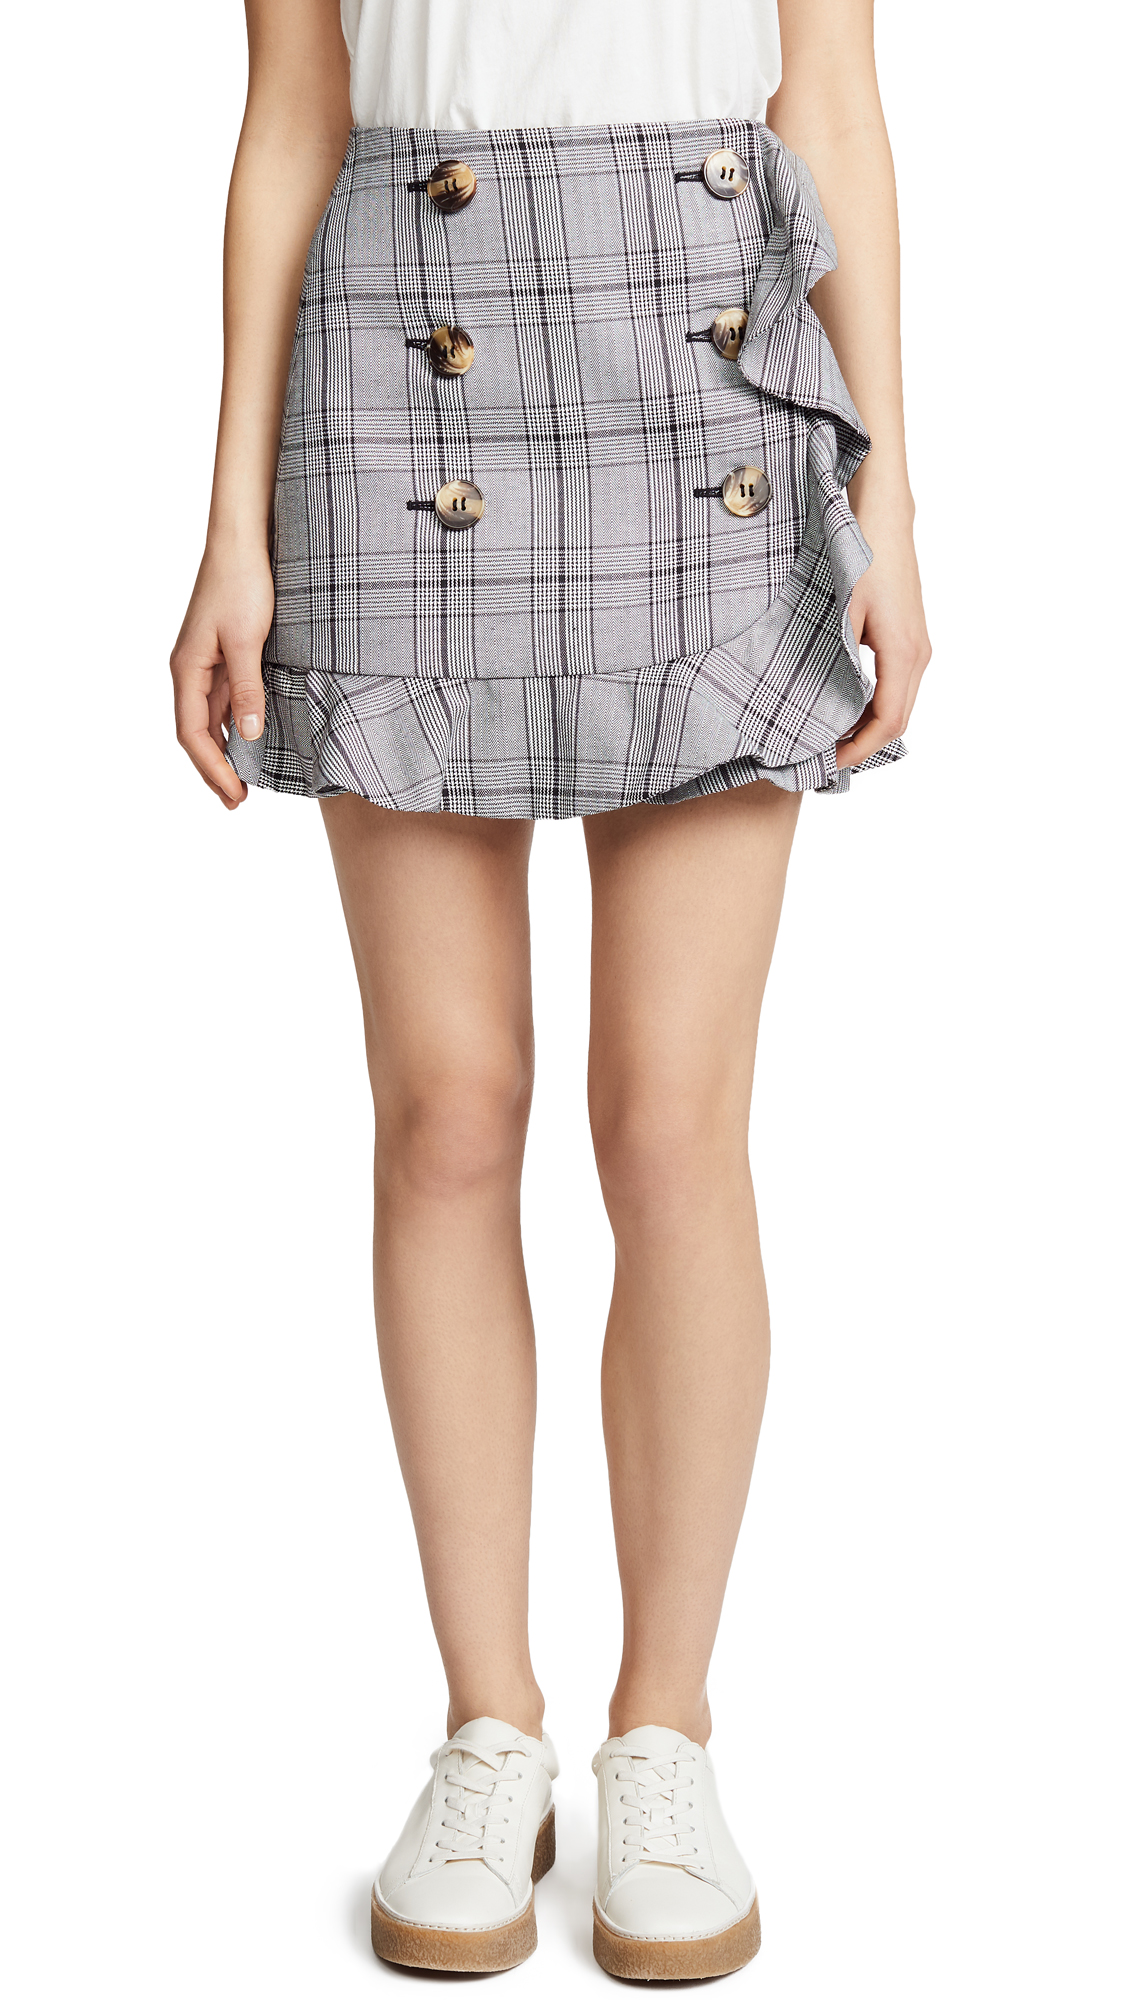 ACLER Penrith Skirt, Plaid